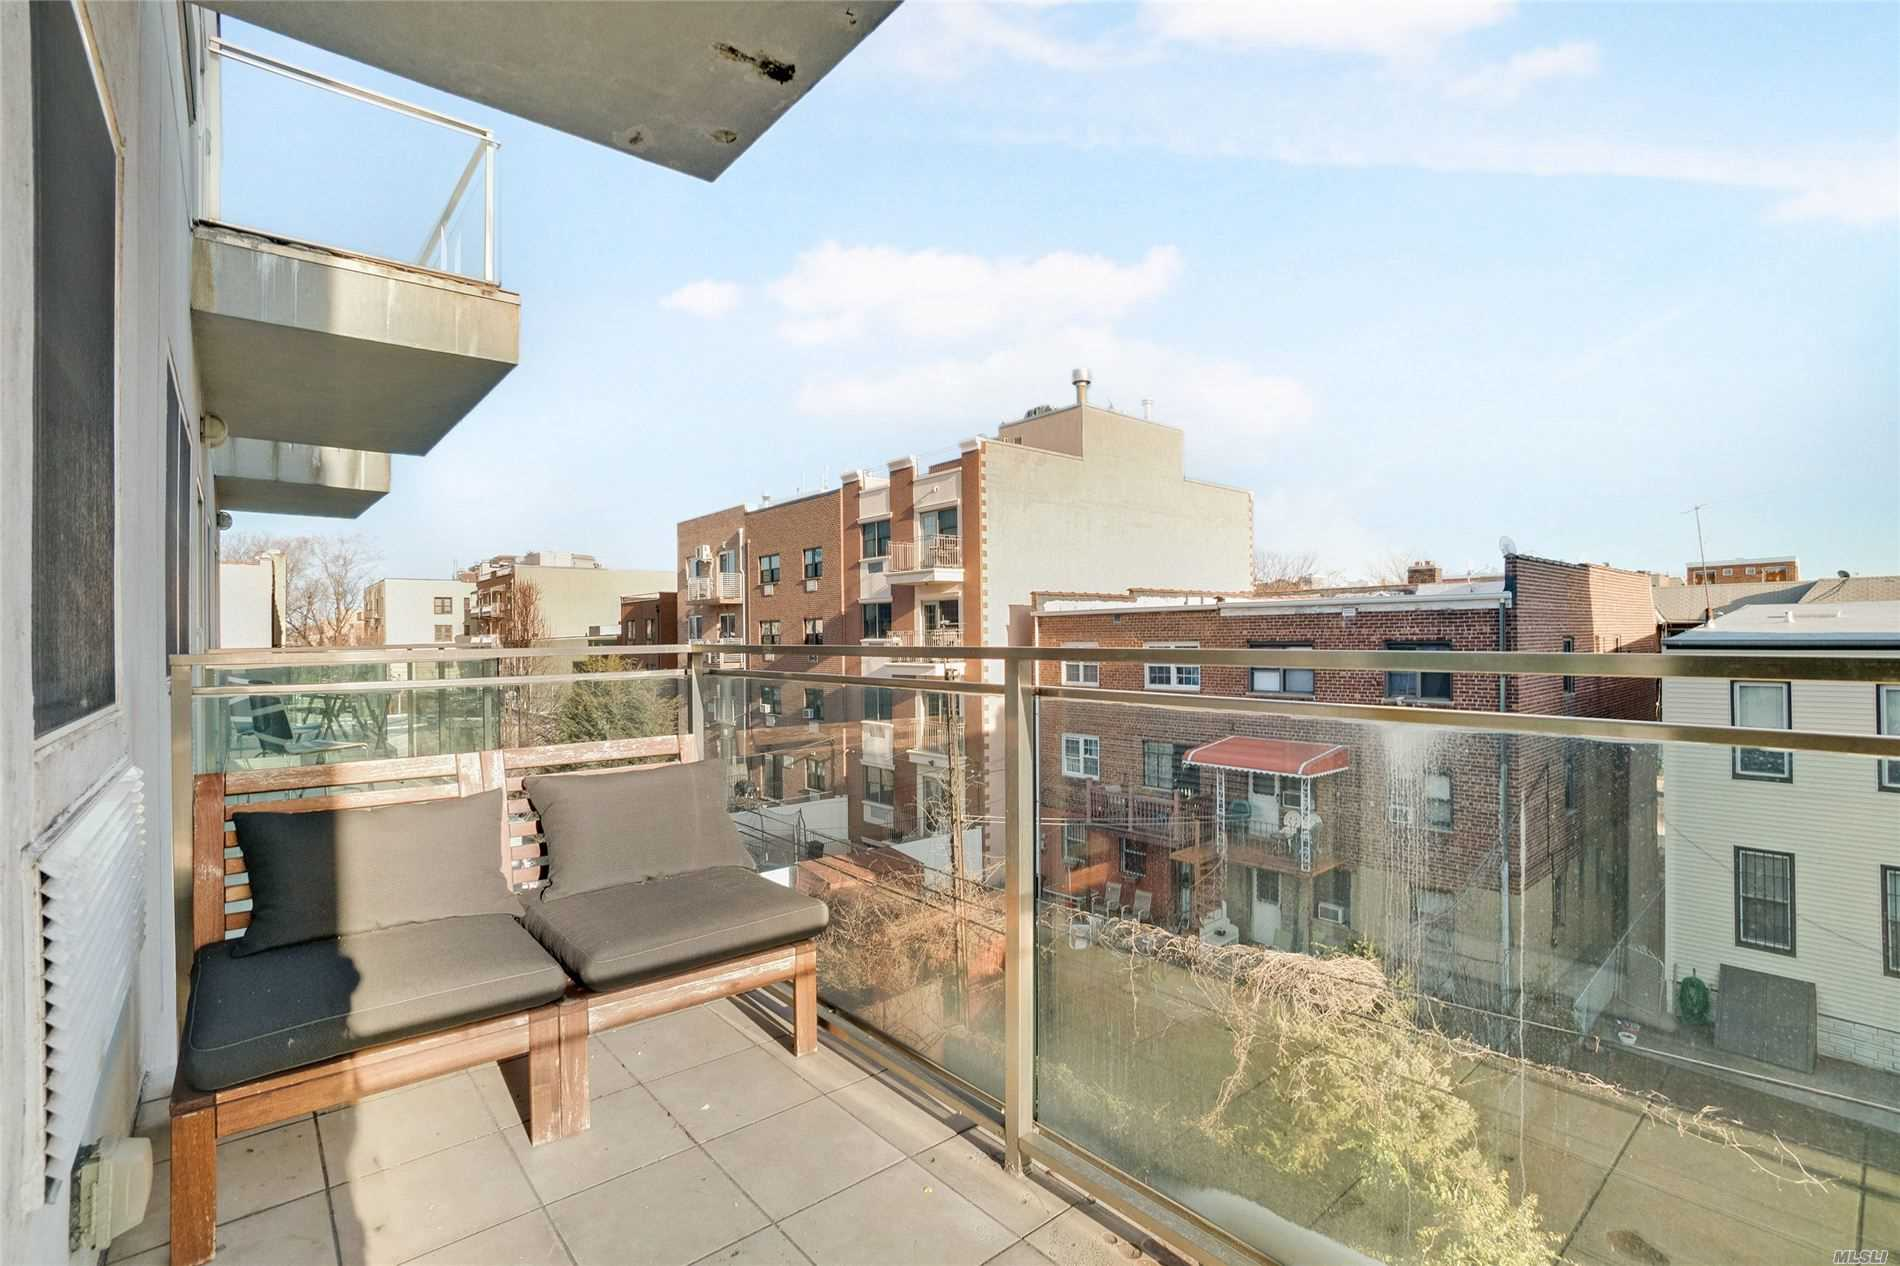 Property for sale at 25-87 37th Street # 3A, Astoria NY 11103, Astoria,  New York 11103